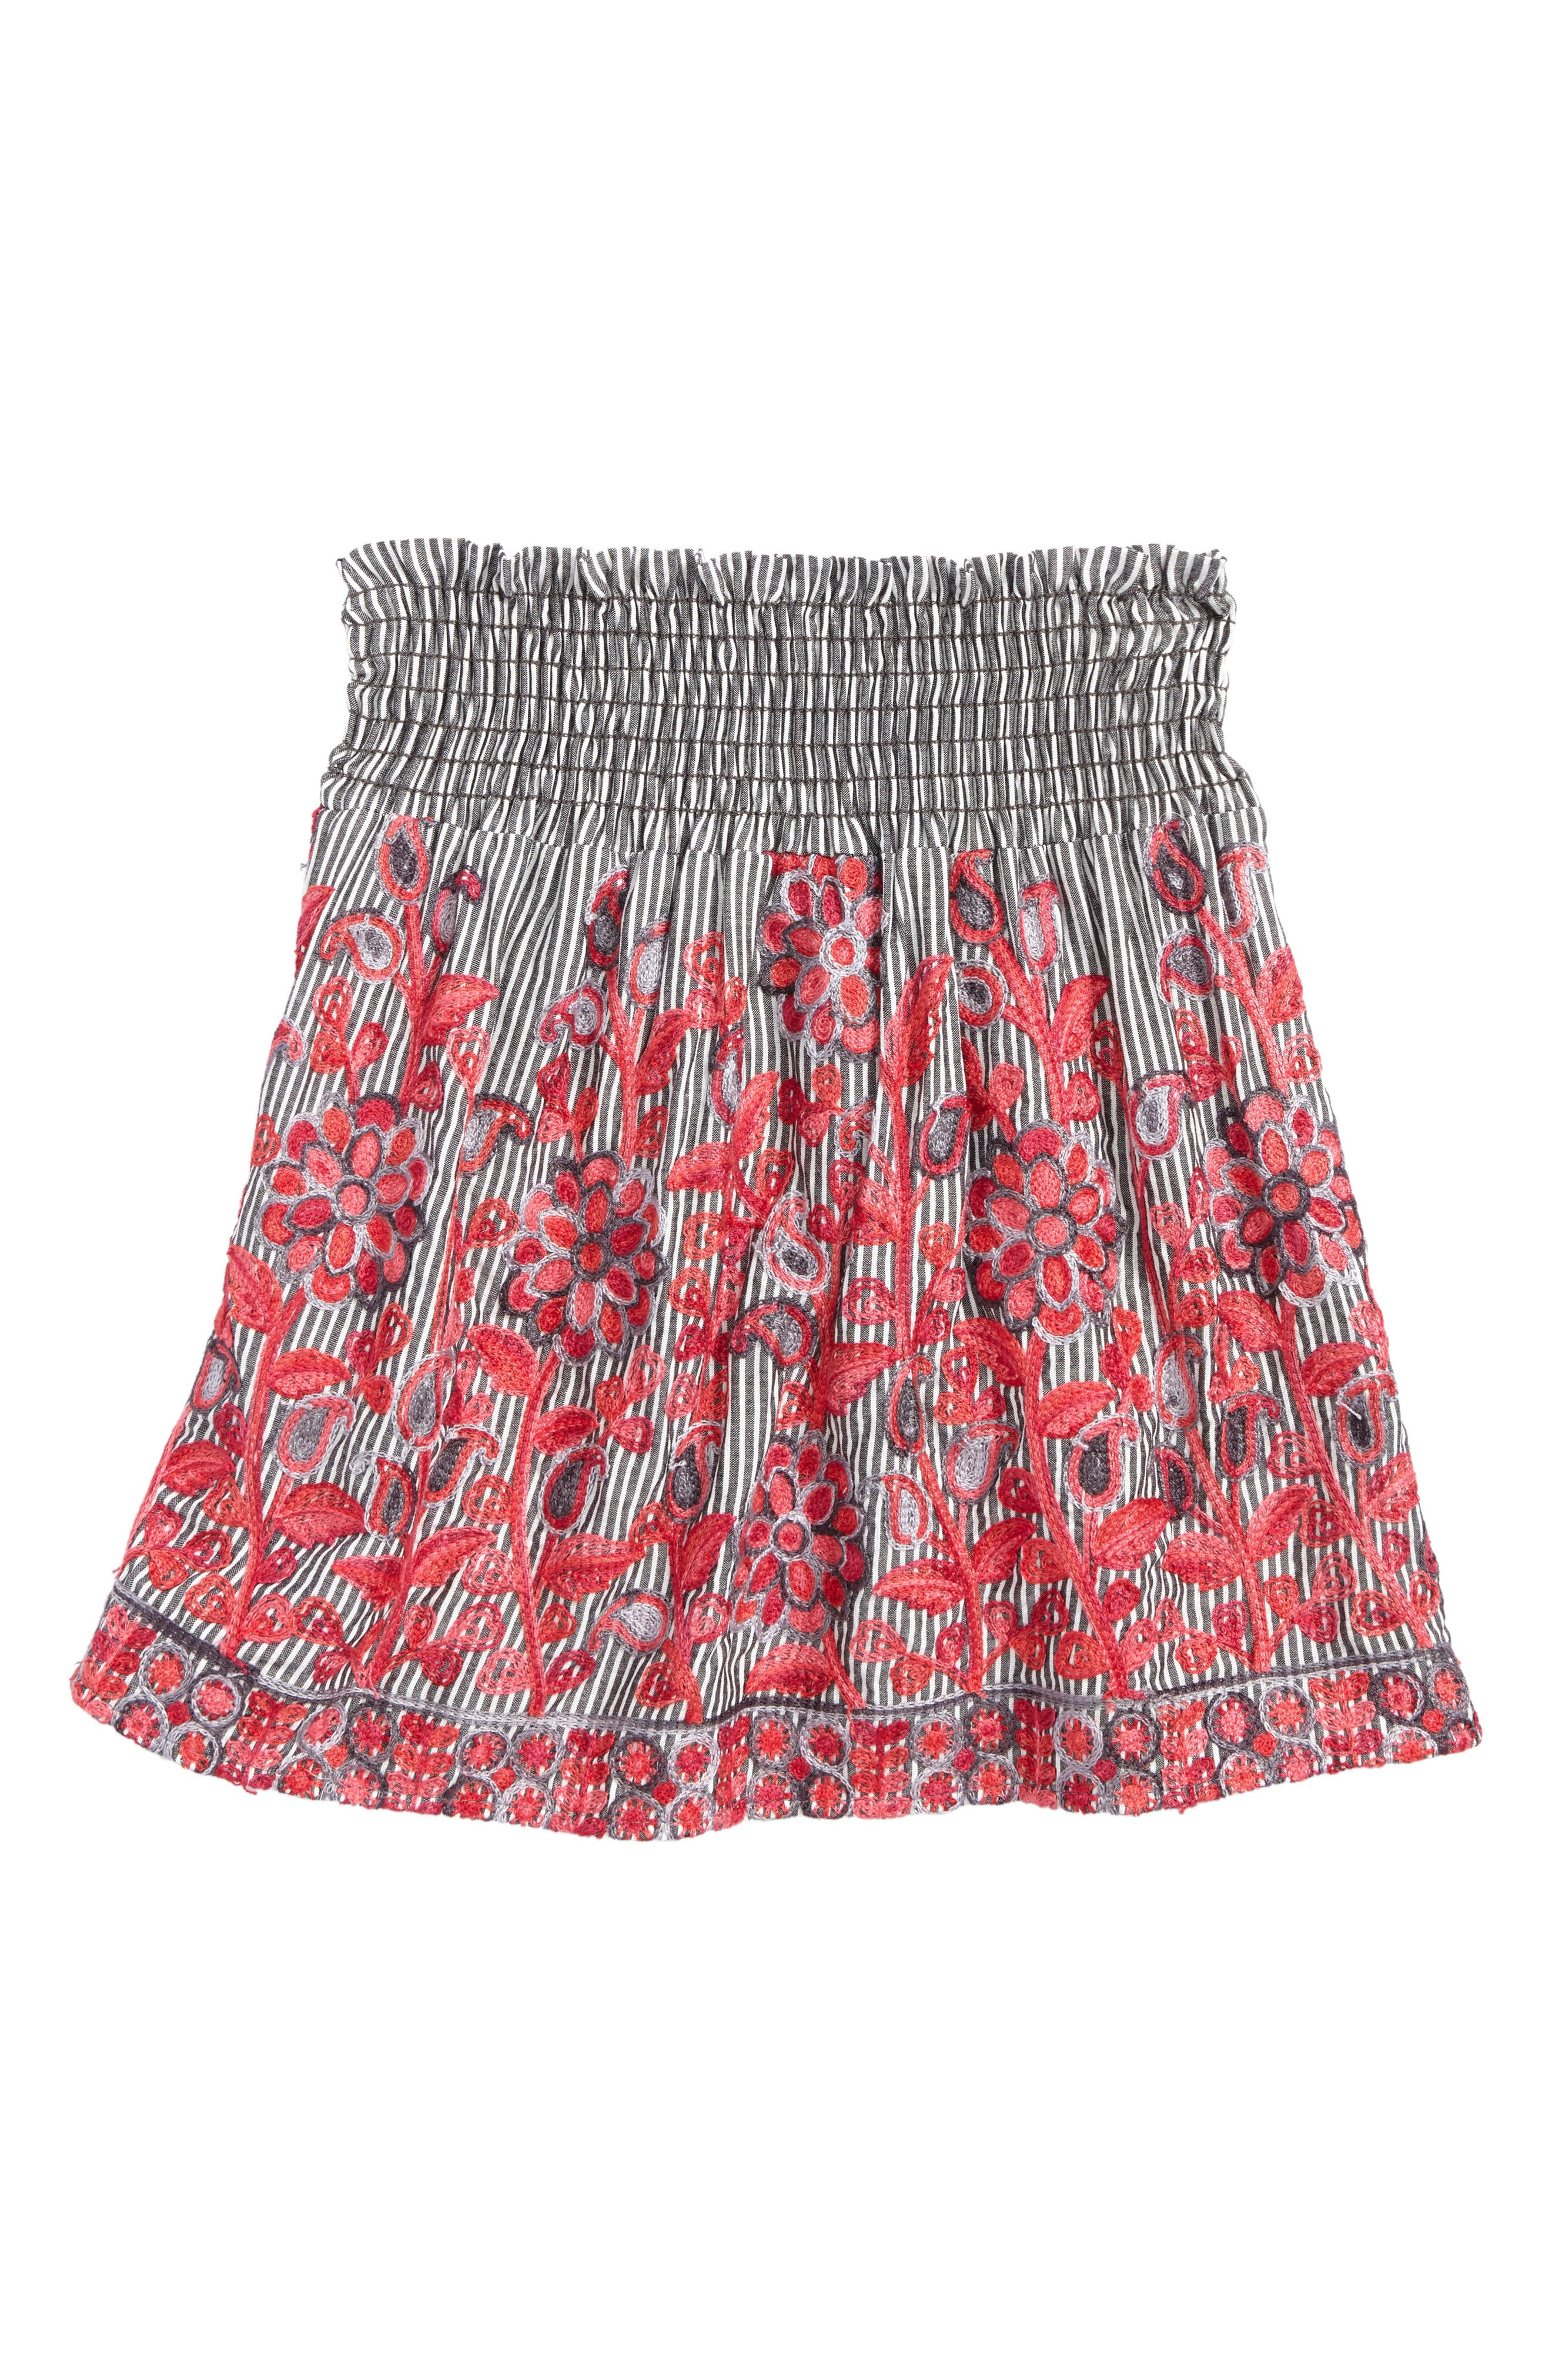 Flower Embroidered Skirt,                             Main thumbnail 1, color,                             Grey Ivory